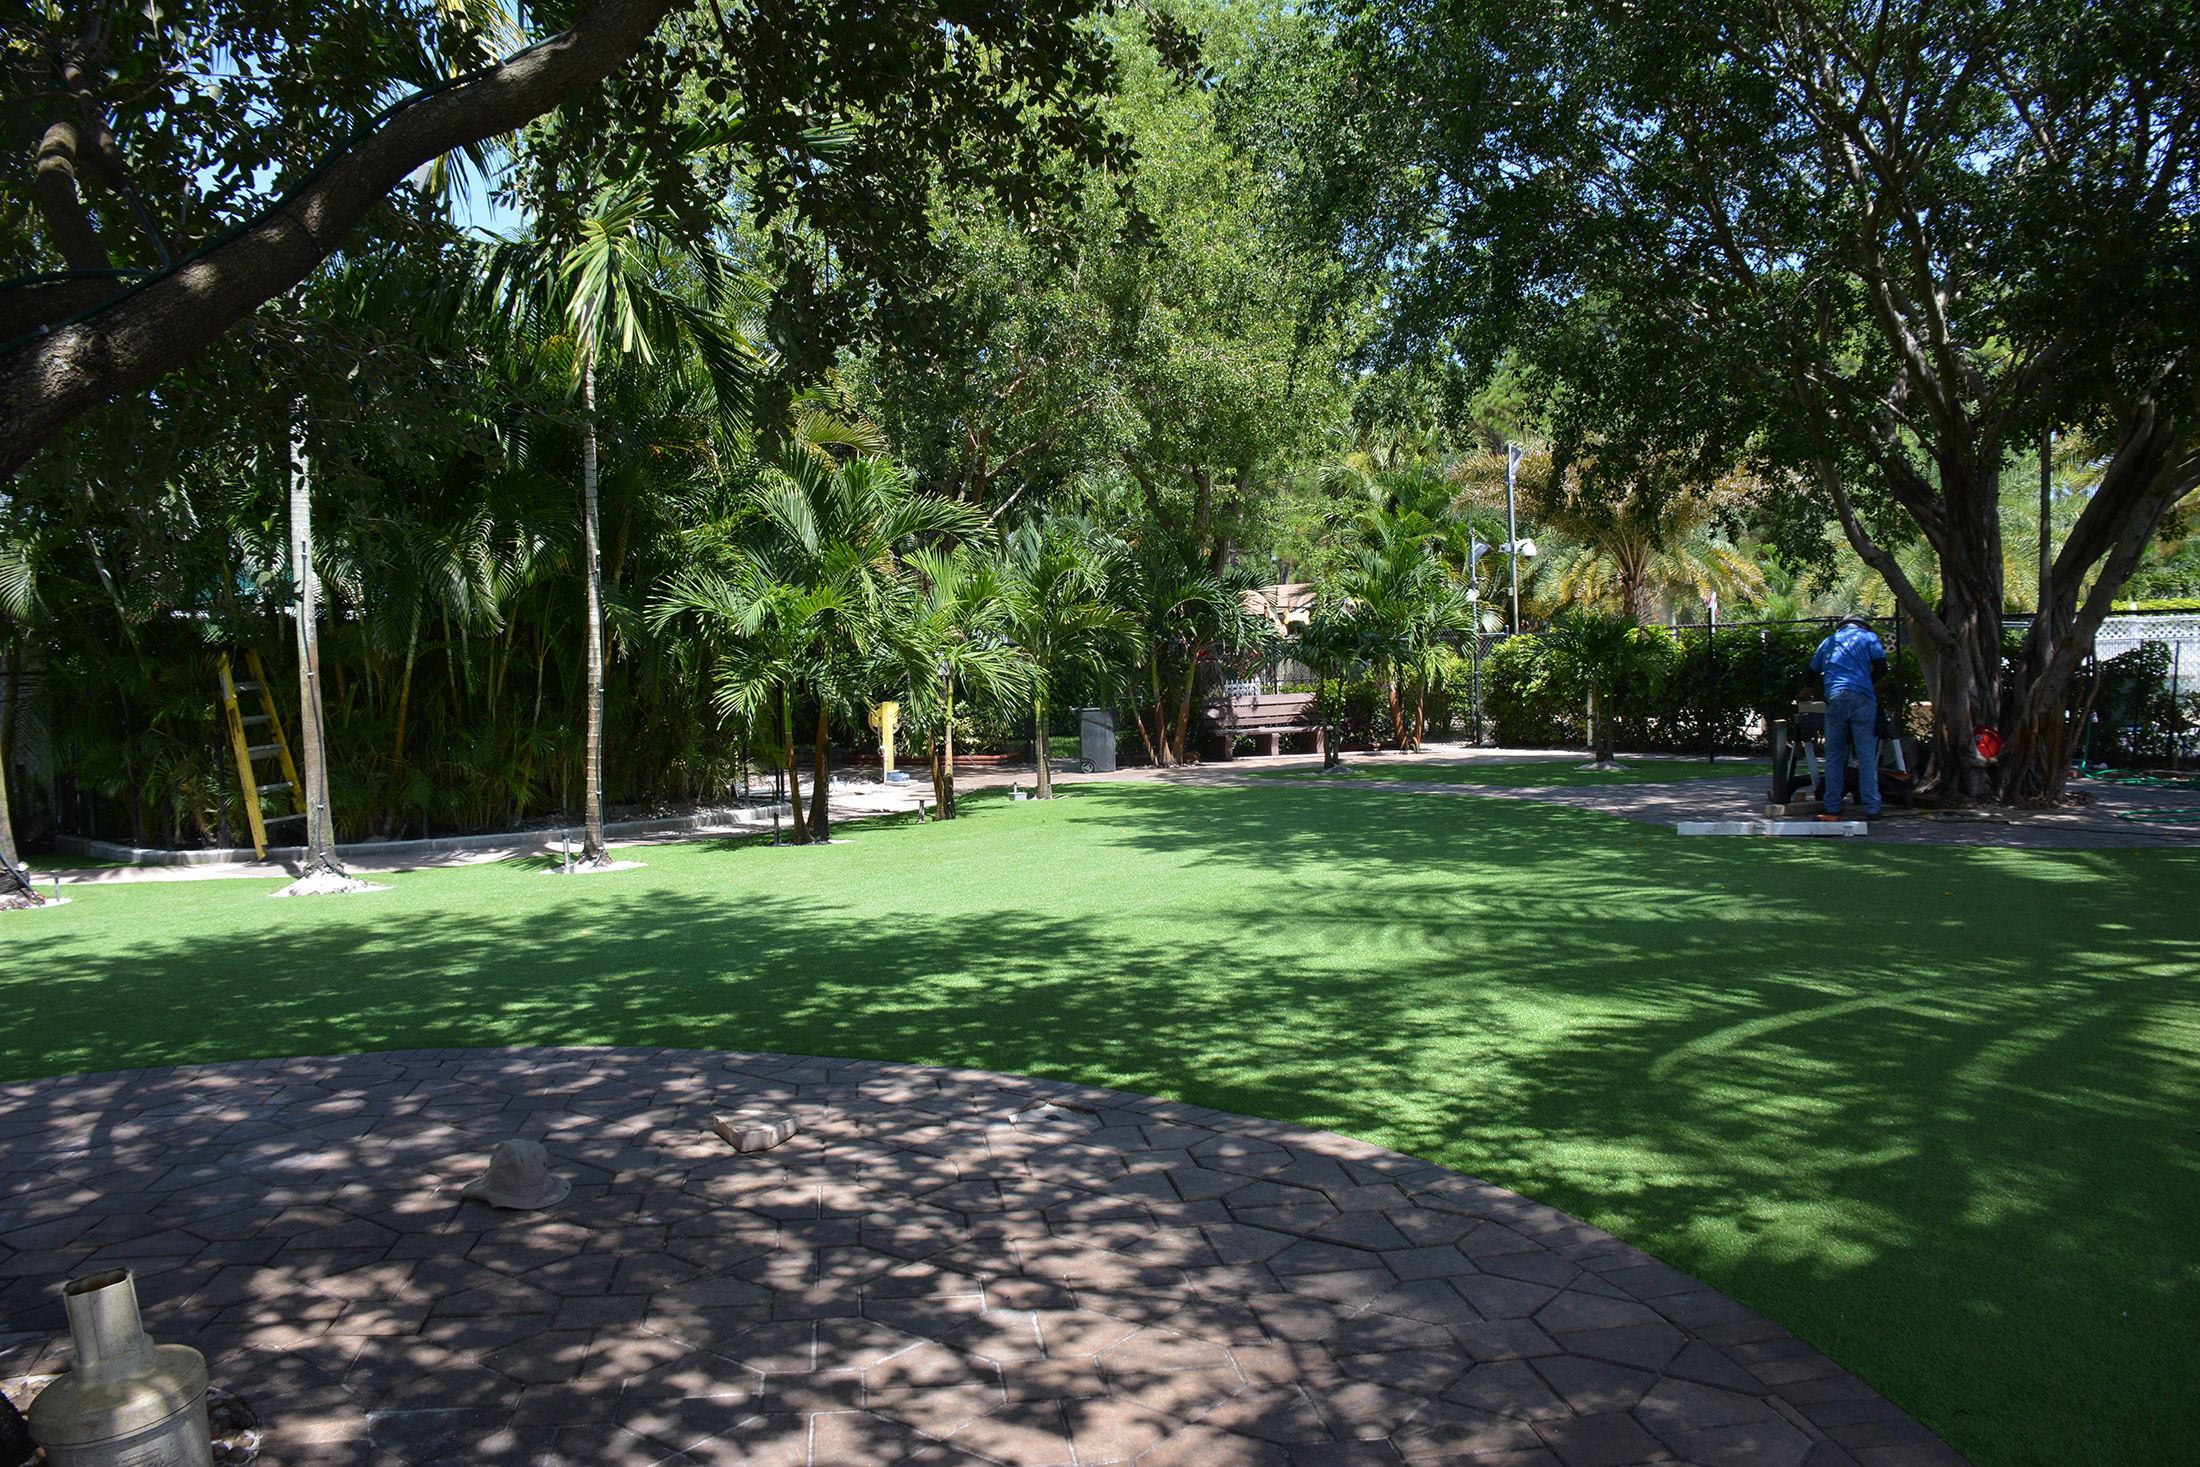 Synthetic lawn artificial grass turf lawn forest backyard landscaping ideas trees.